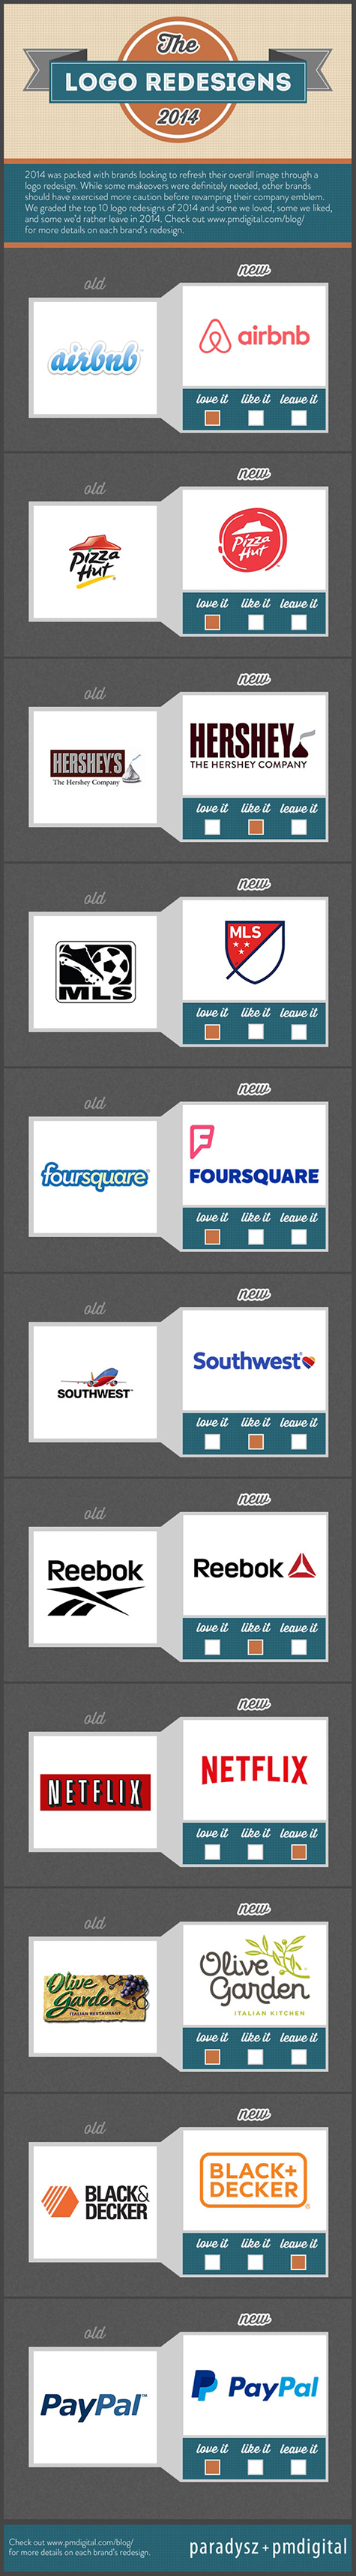 Which Logos Had to Go in 2014? [Infographic]